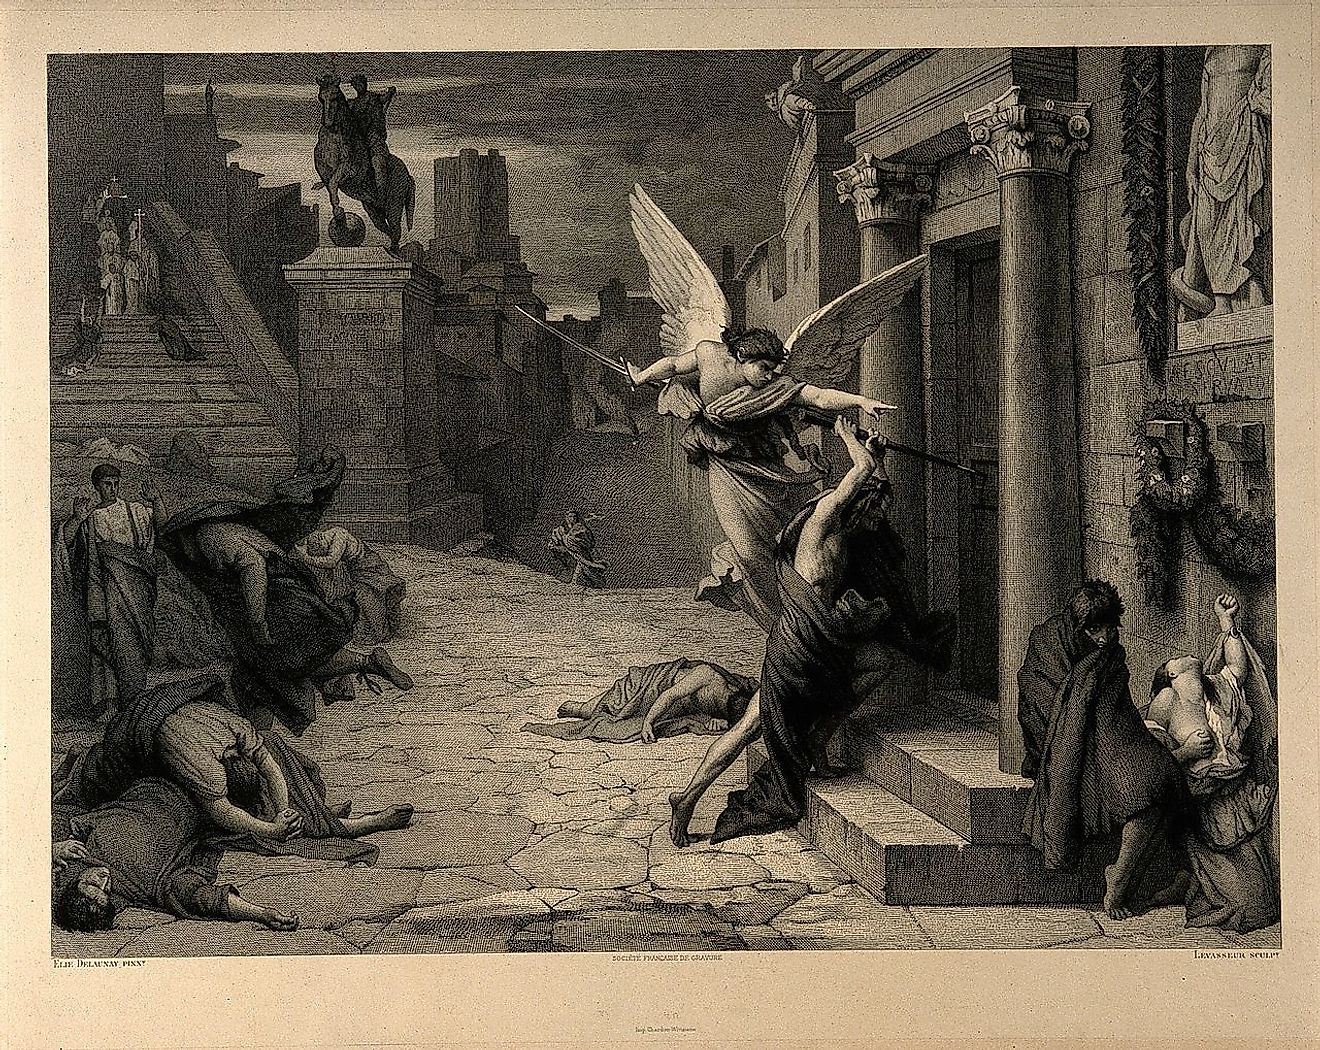 The angel of death striking a door during the plague of Rome: an engraving by Levasseur after Jules-Elie Delaunay